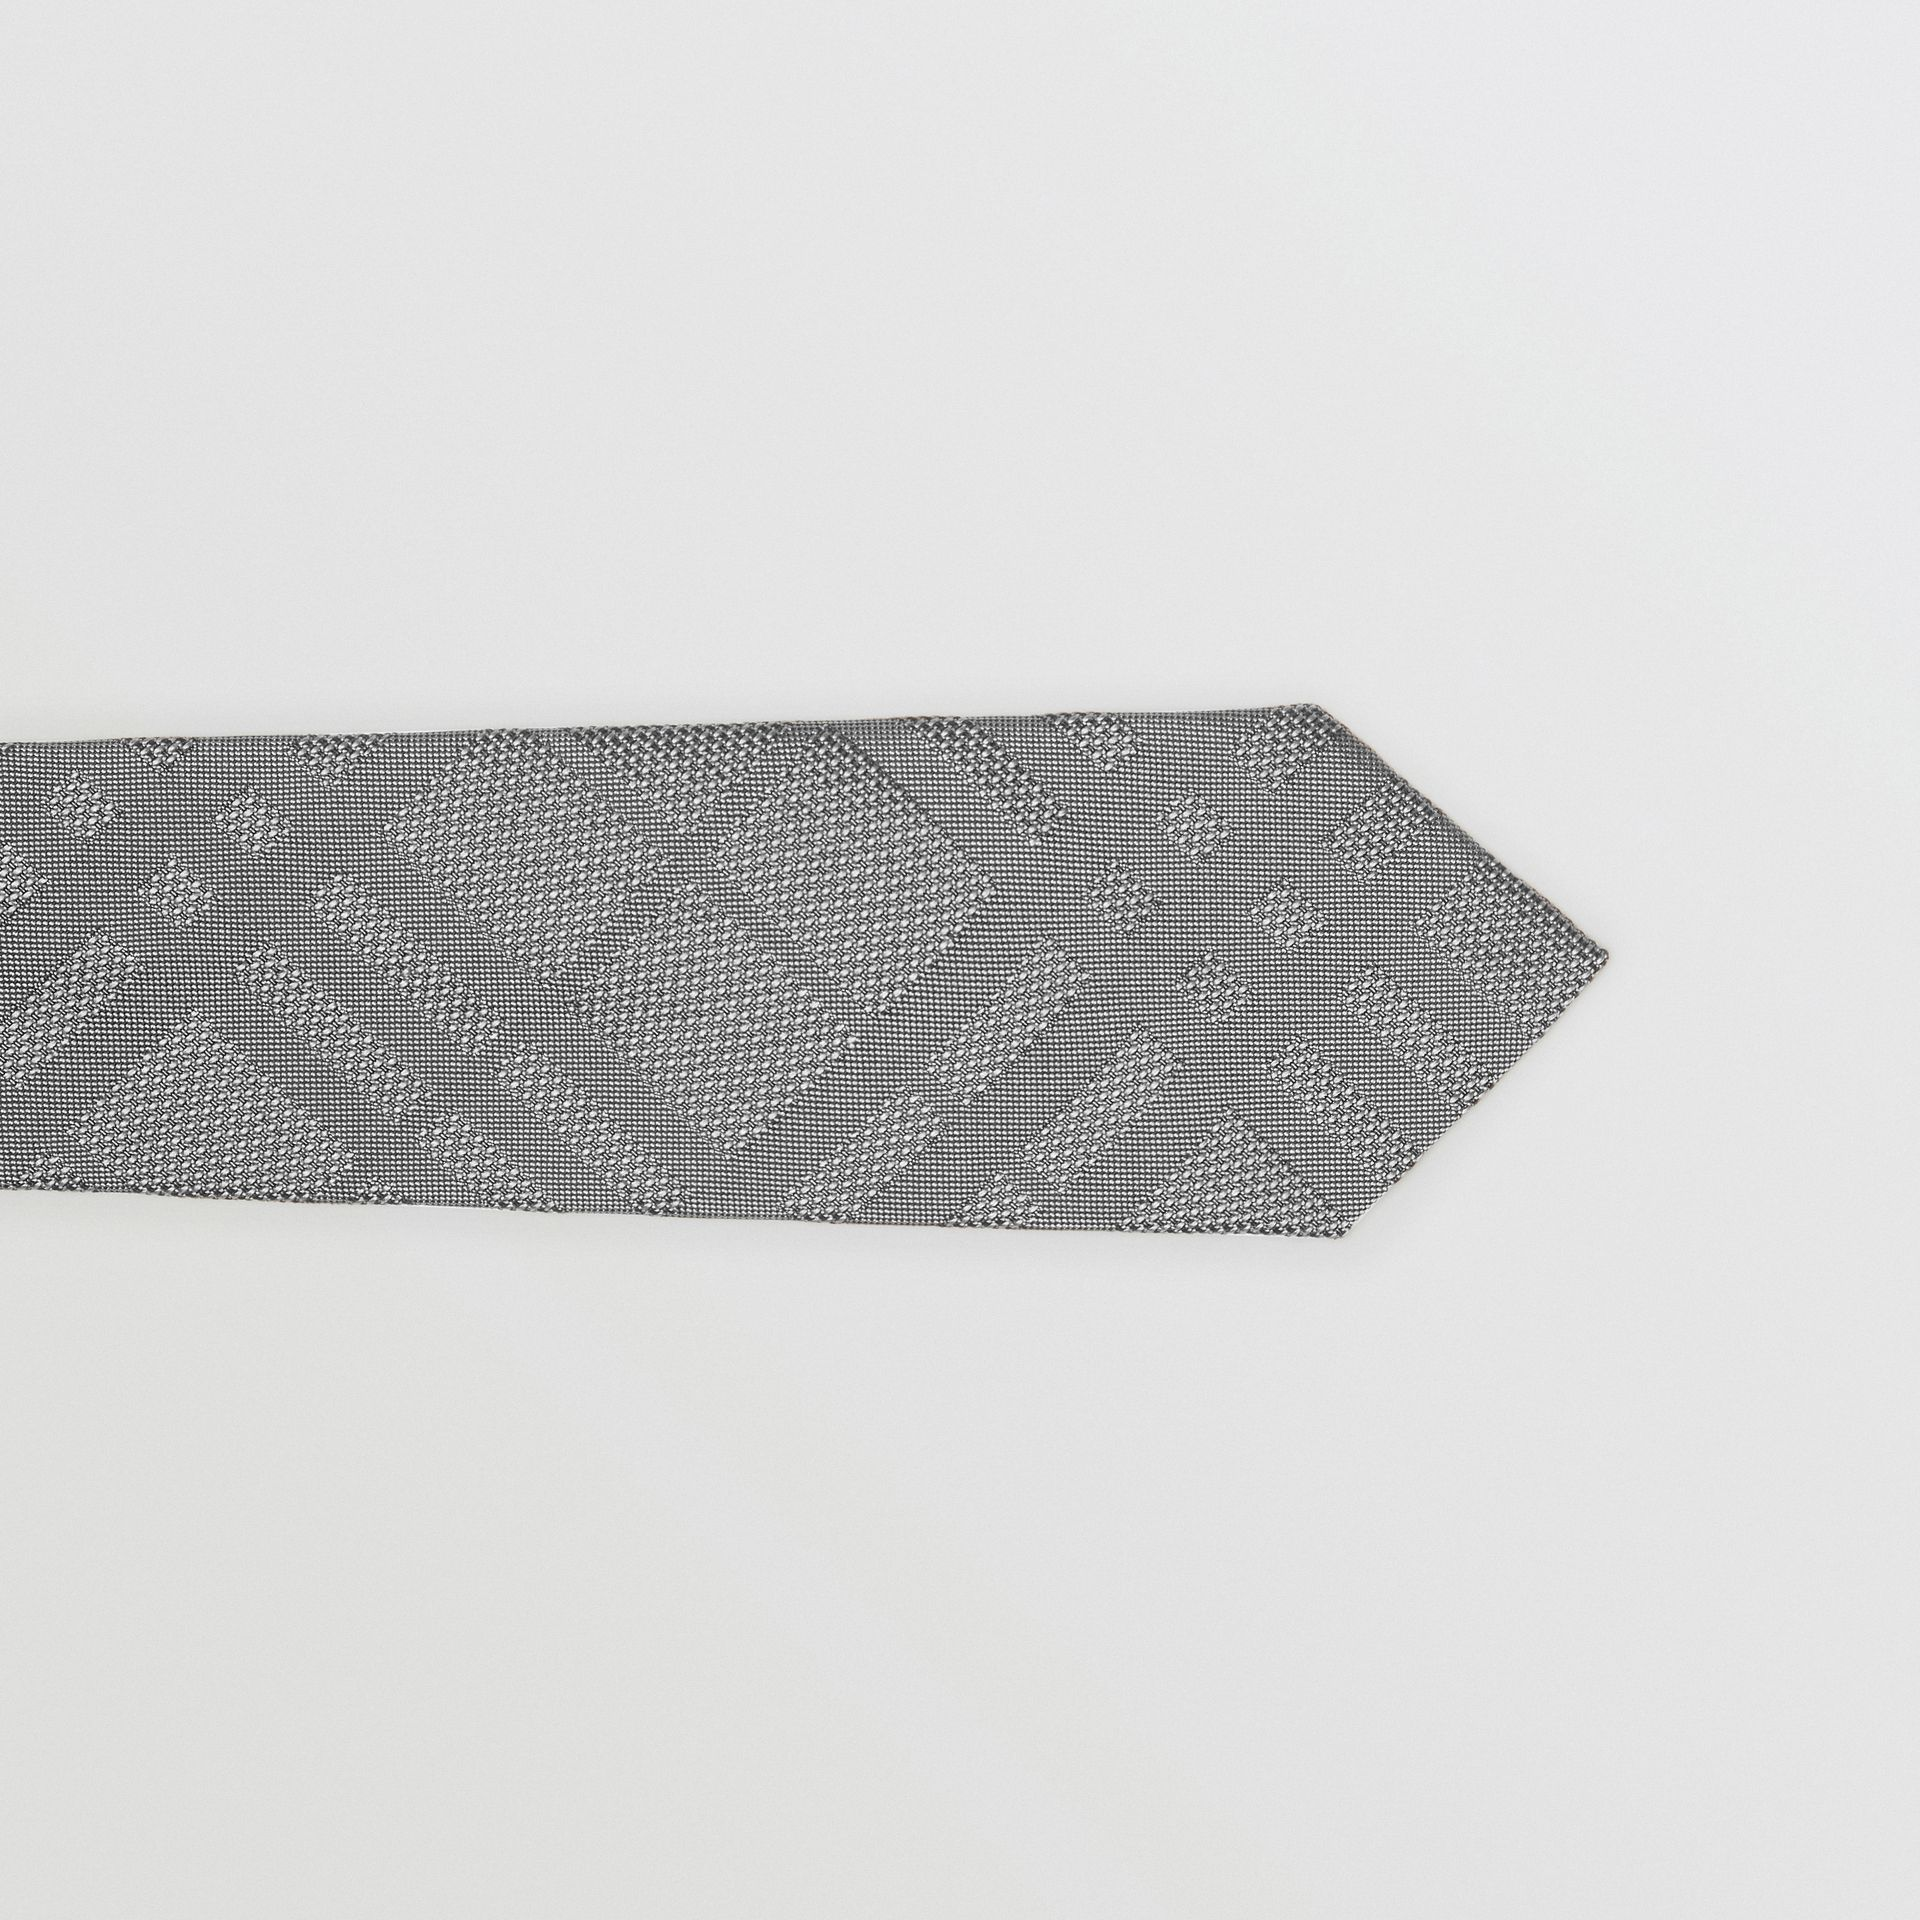 Classic Cut Check Silk Jacquard Tie in Charcoal - Men | Burberry - gallery image 1